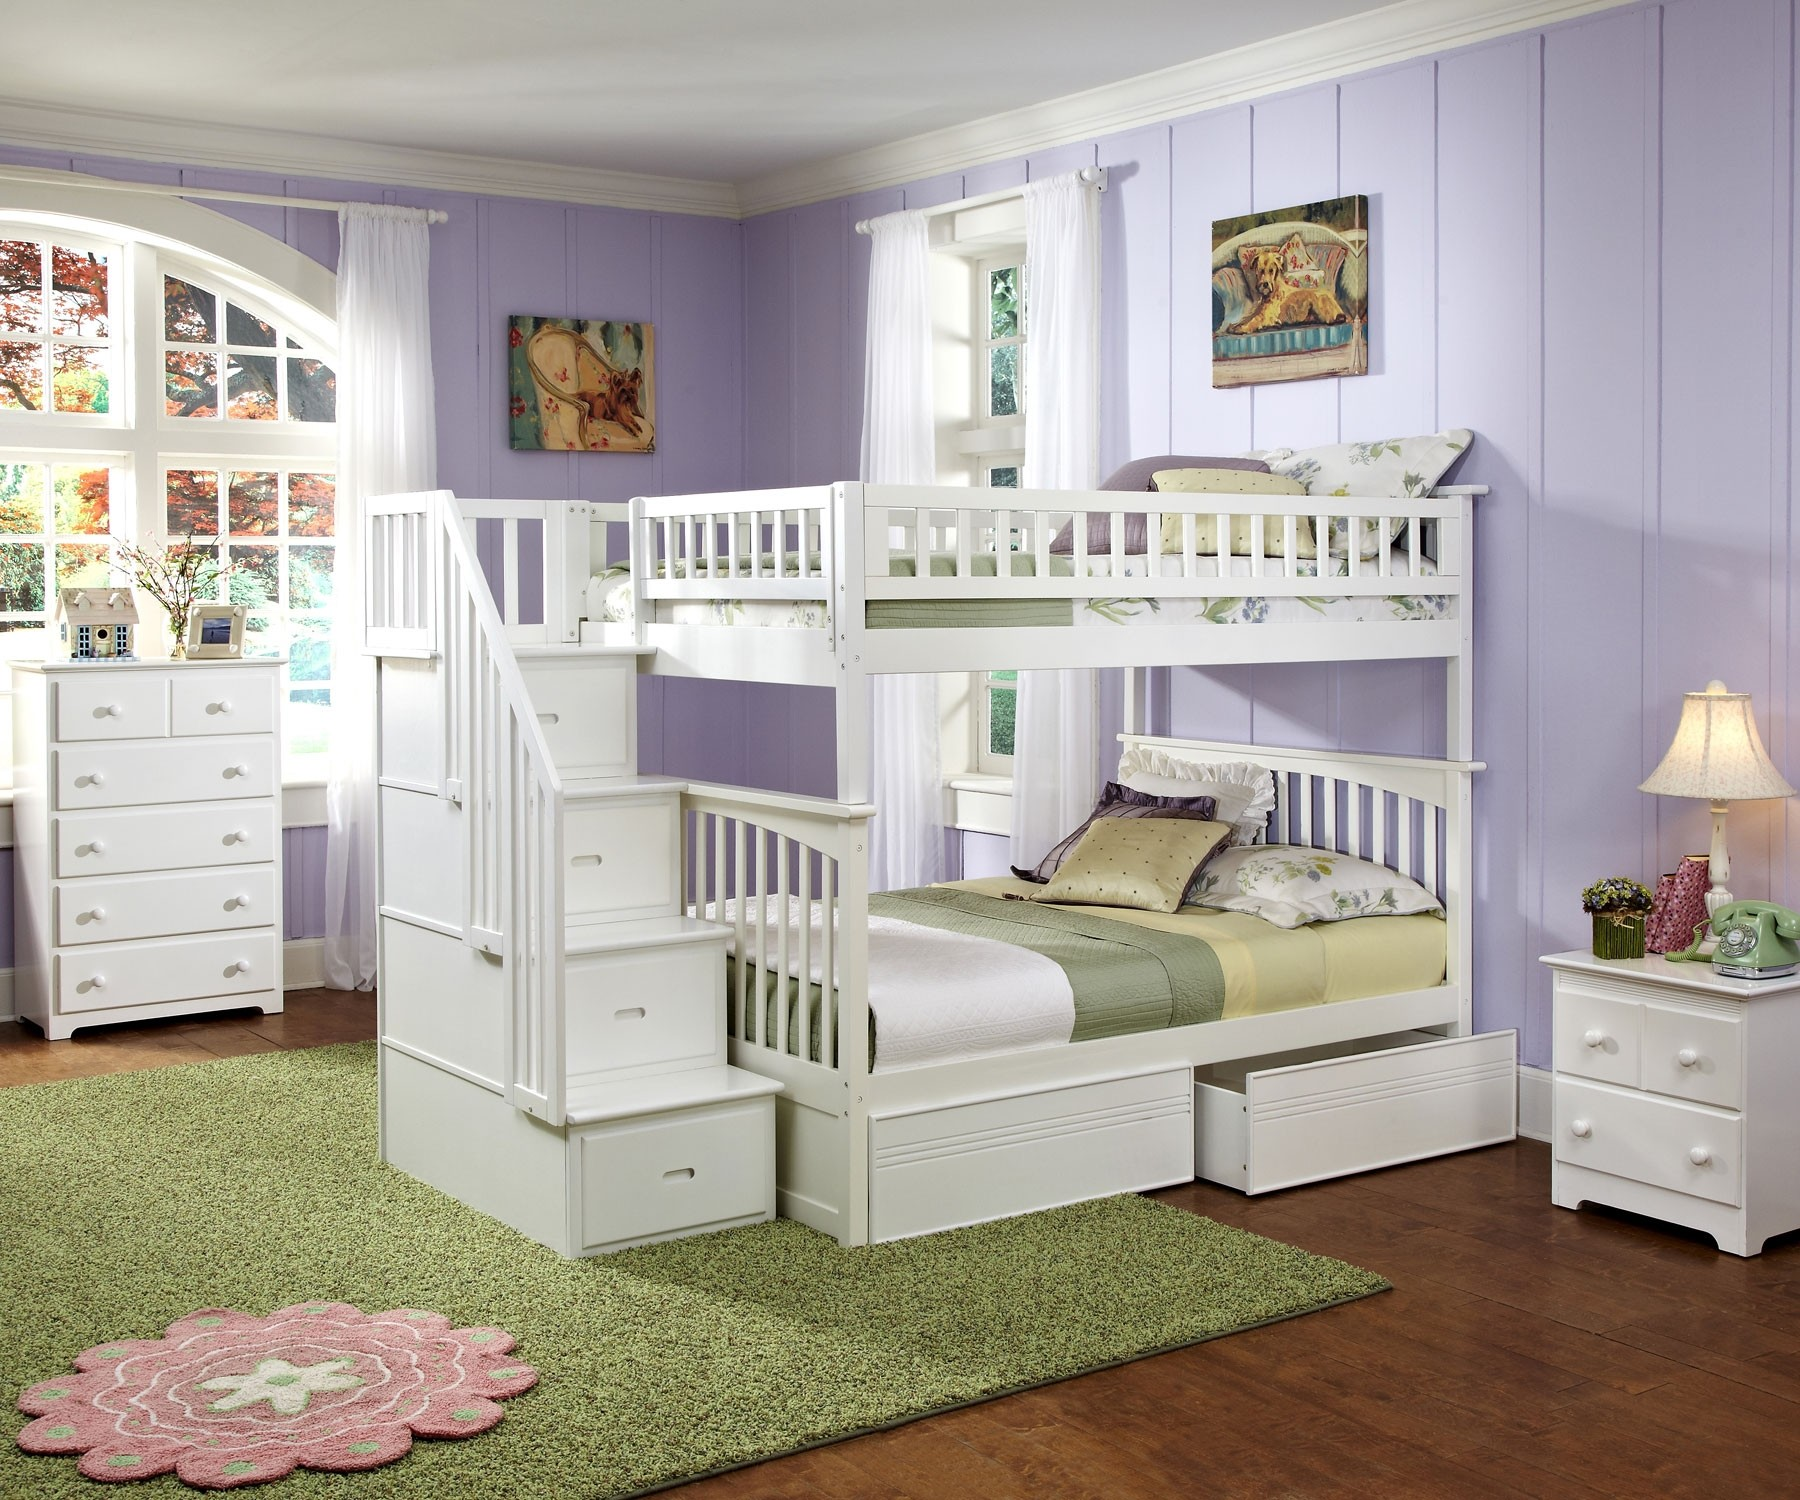 pretty wood Bunk Beds With Stairs in white with storage on wooden floor matched with purple wall with pictures plus chic white wooden dresser for teen bedroom decor ideas